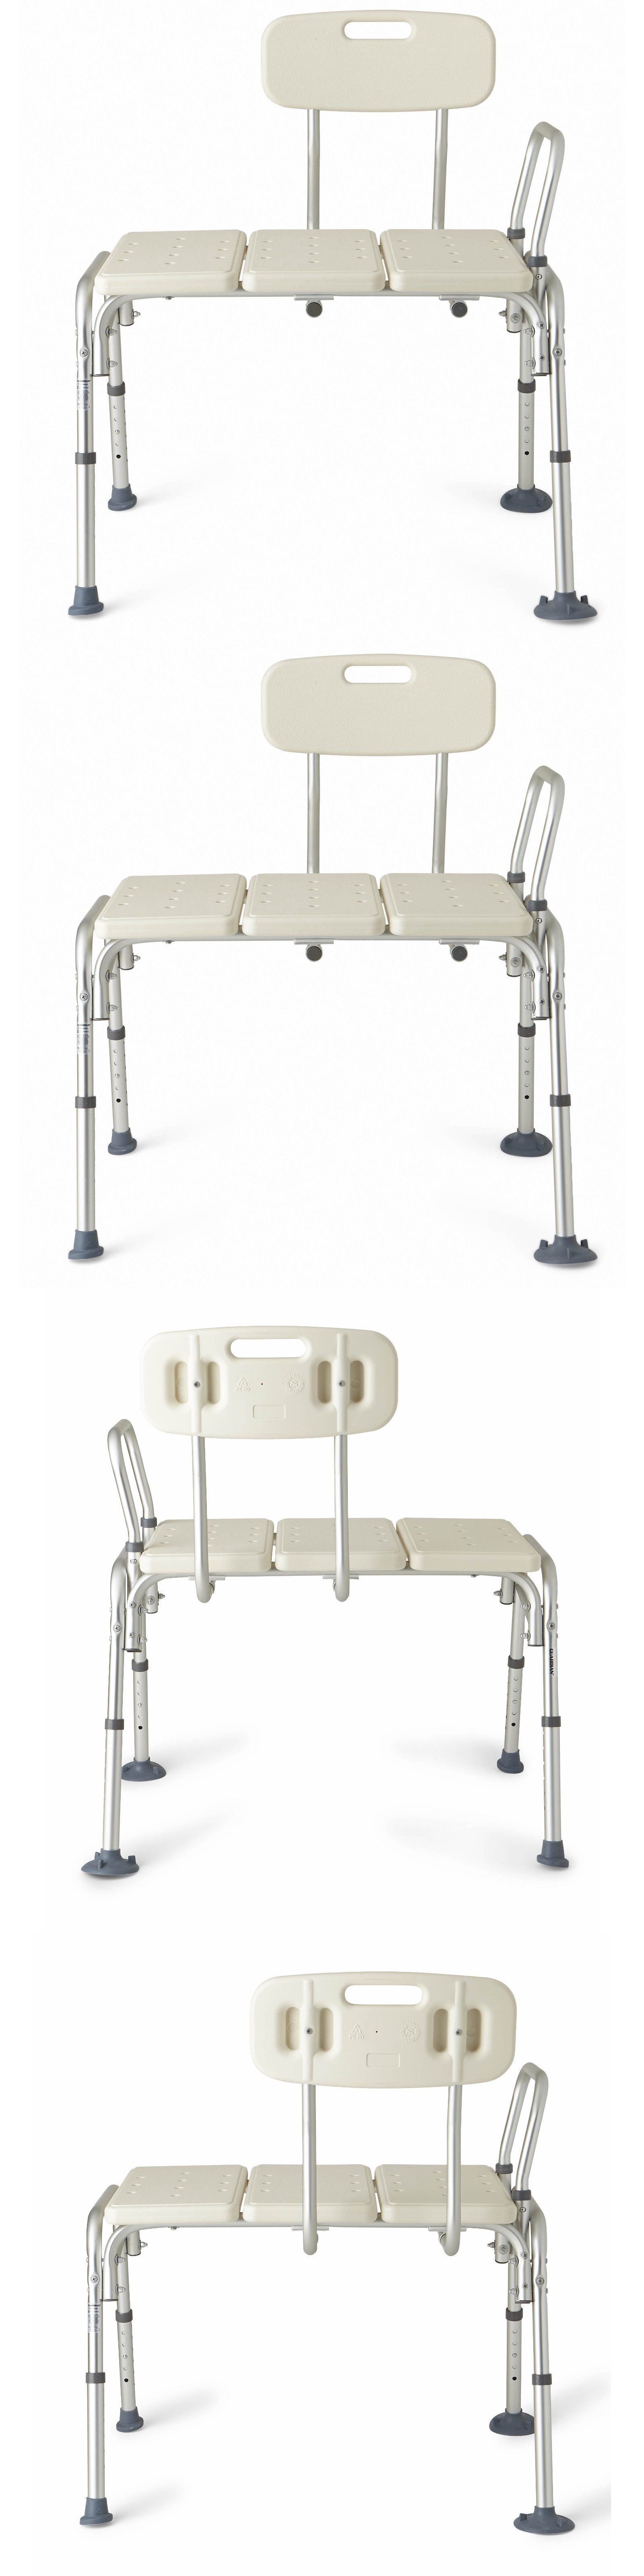 Transfer Boards And Benches: Bathtub Transfer Bench Safety Handicap Elderly  Adjustable Shower 300 Lbs Chair